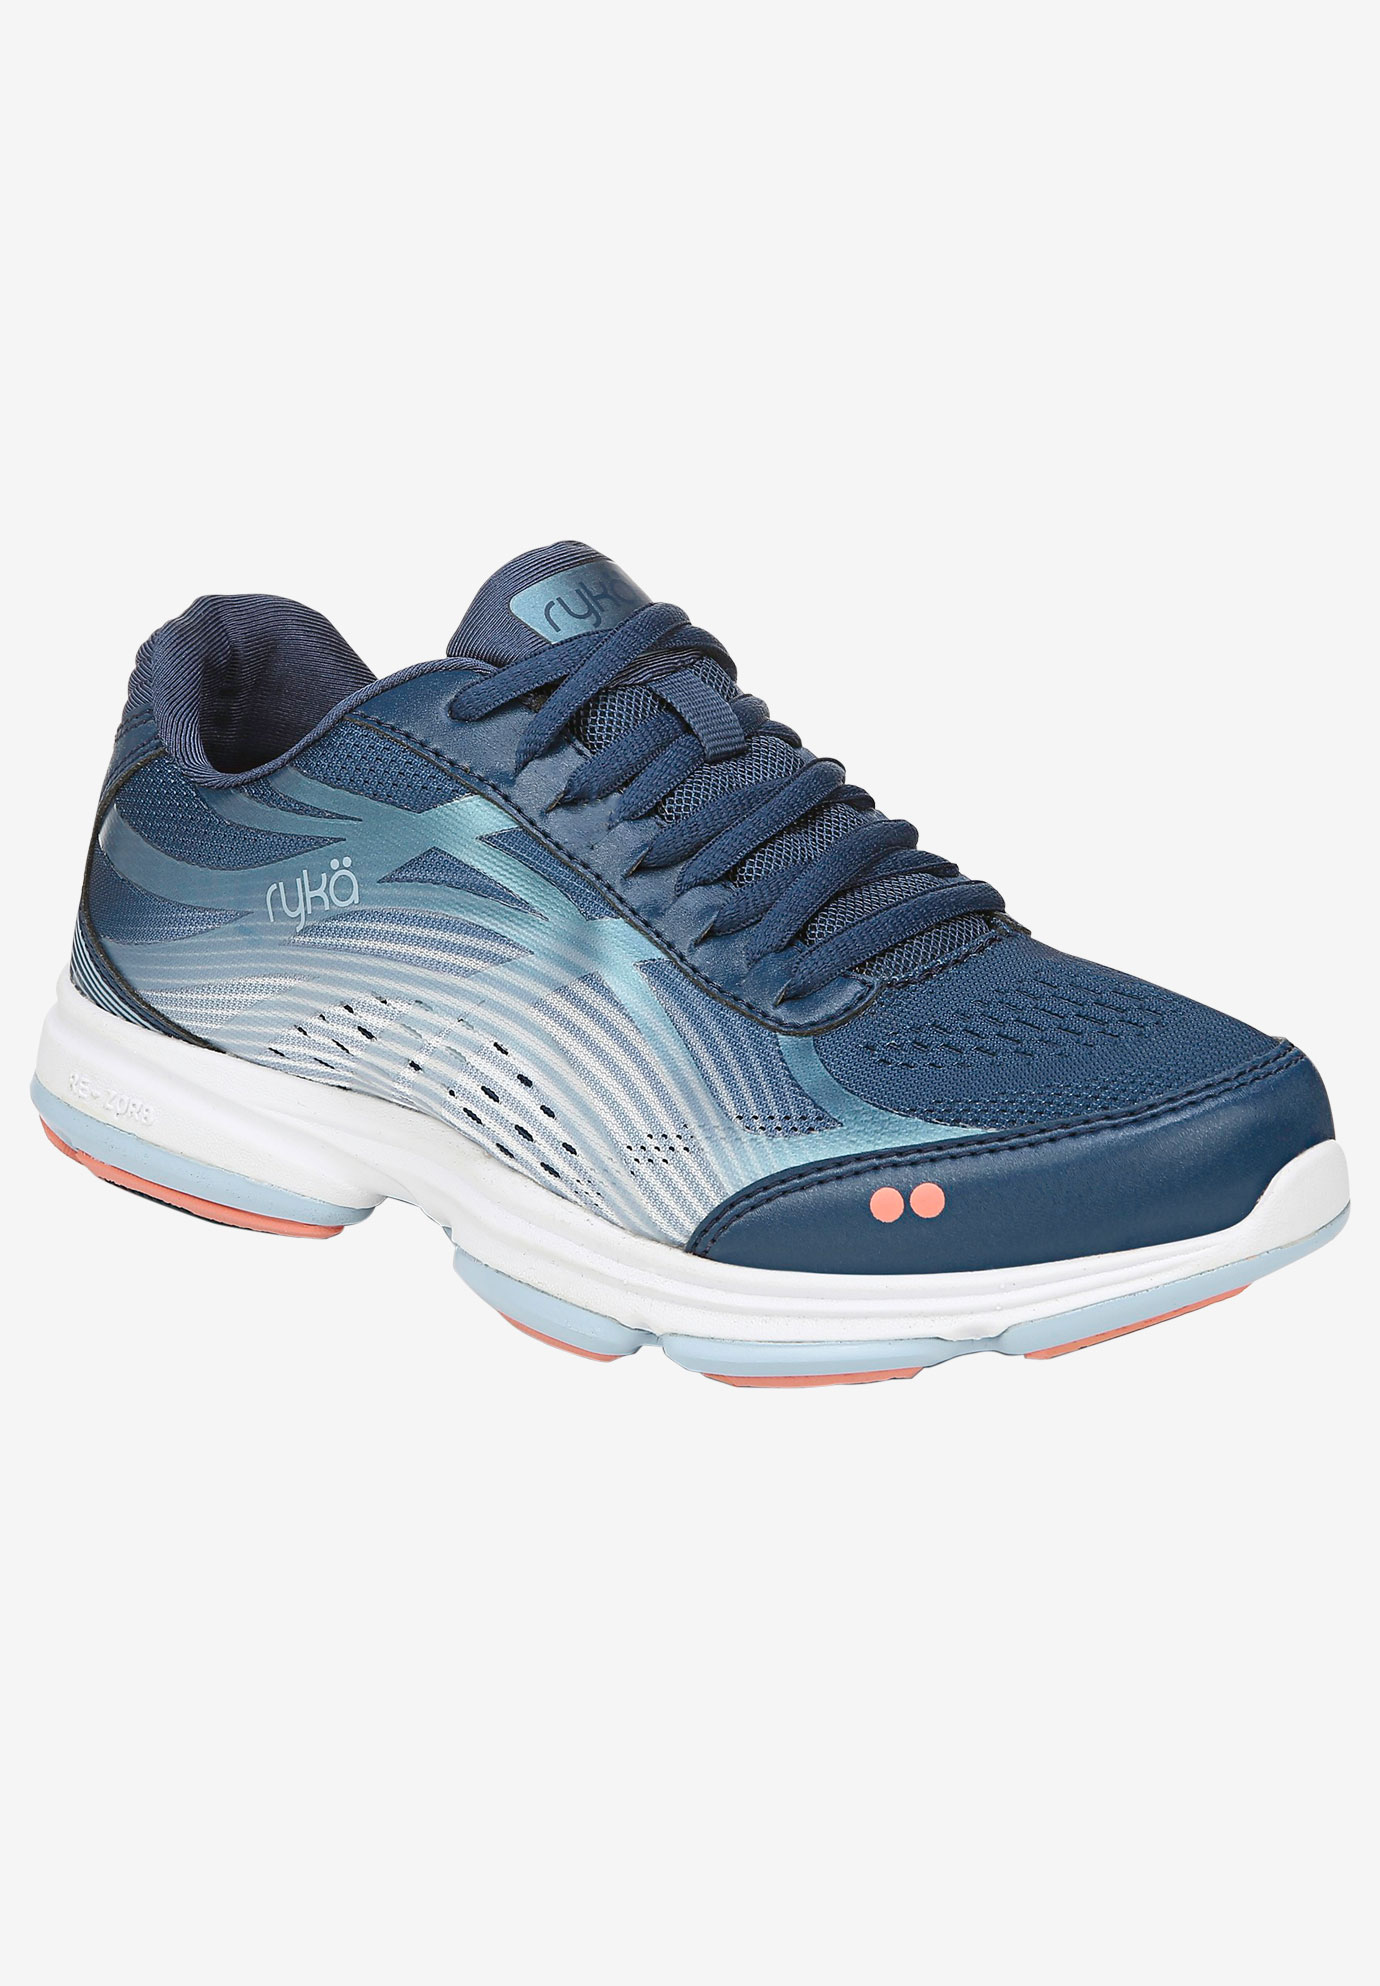 Devotion Plus 3 Sneaker ,